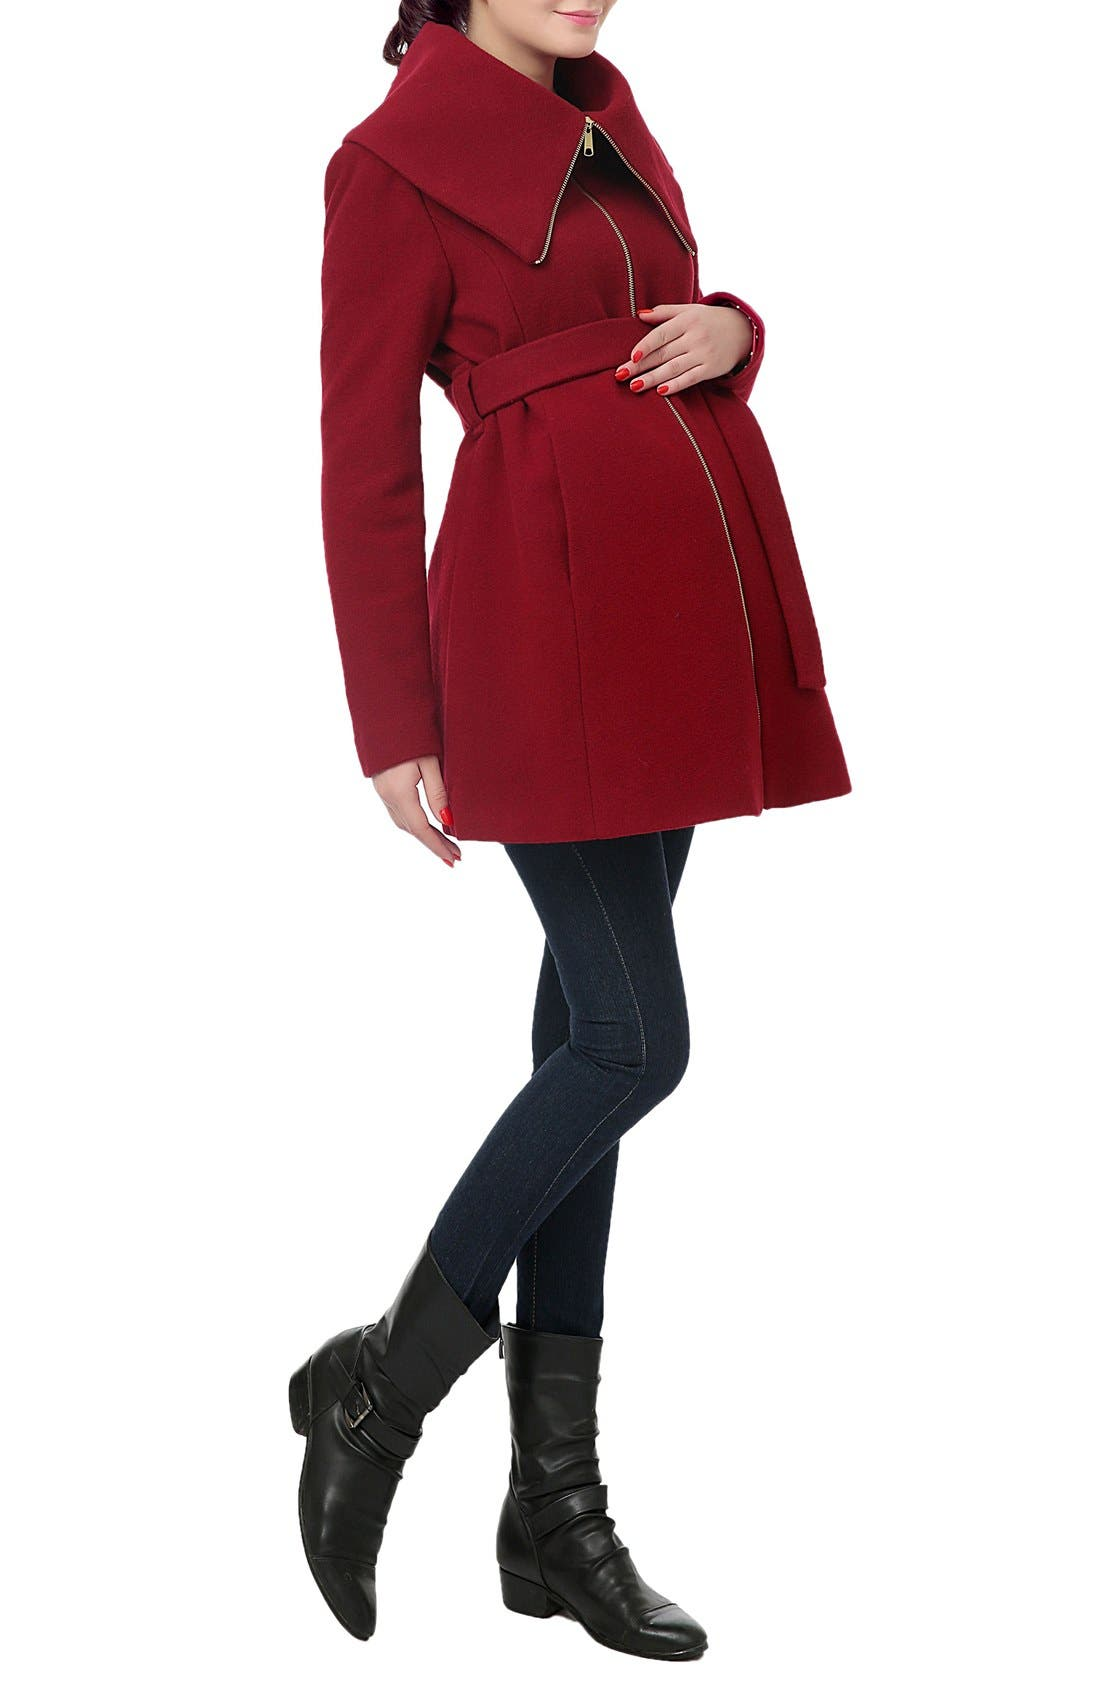 'Mia' High Collar Maternity Coat,                             Alternate thumbnail 3, color,                             Wine